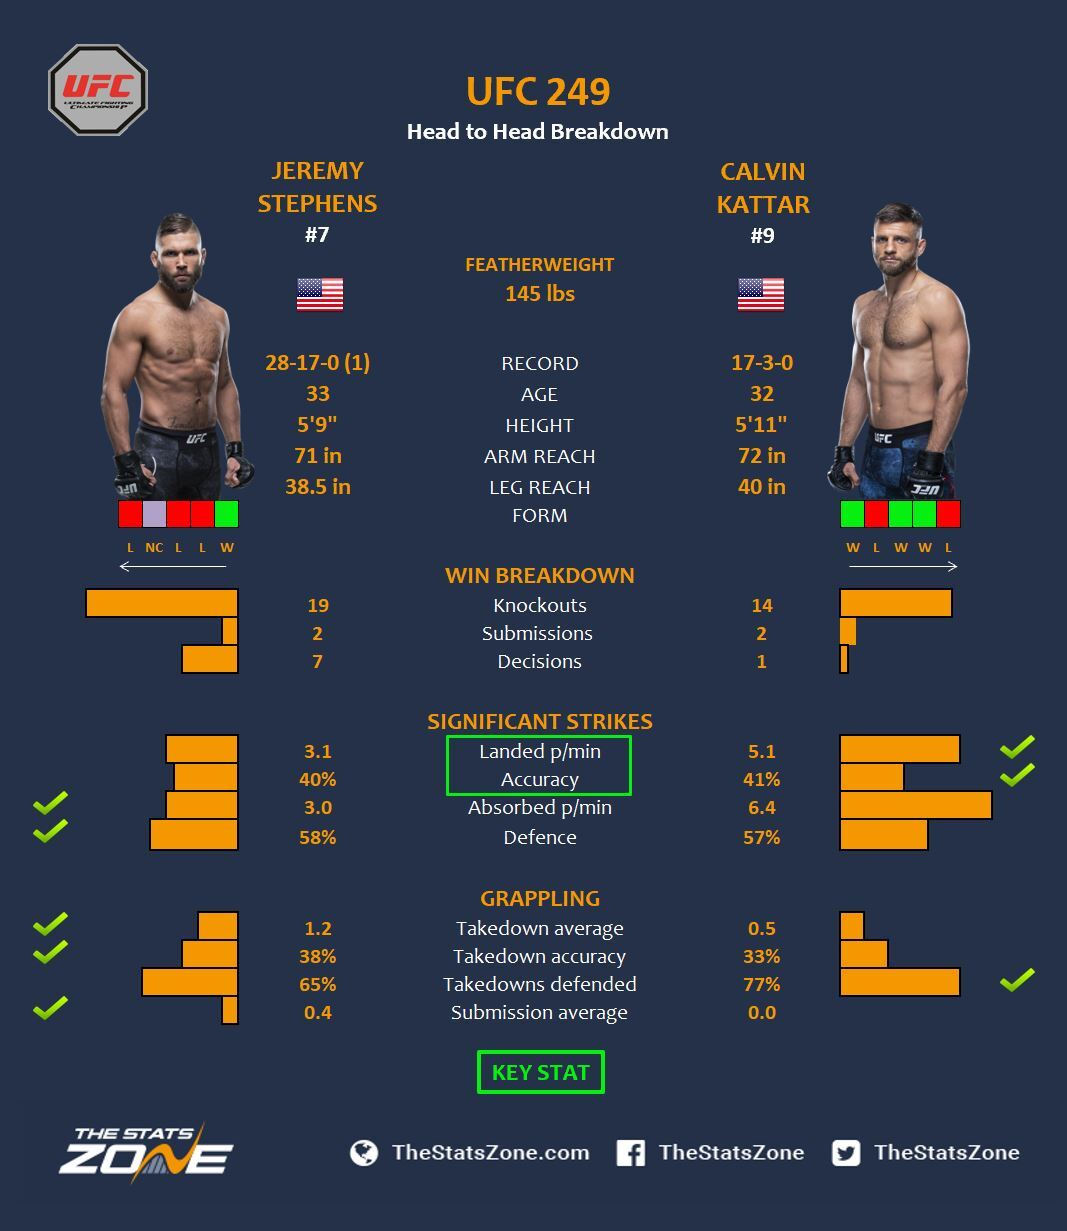 Mma Preview Jeremy Stephens Vs Calvin Kattar At Ufc 249 The Stats Zone